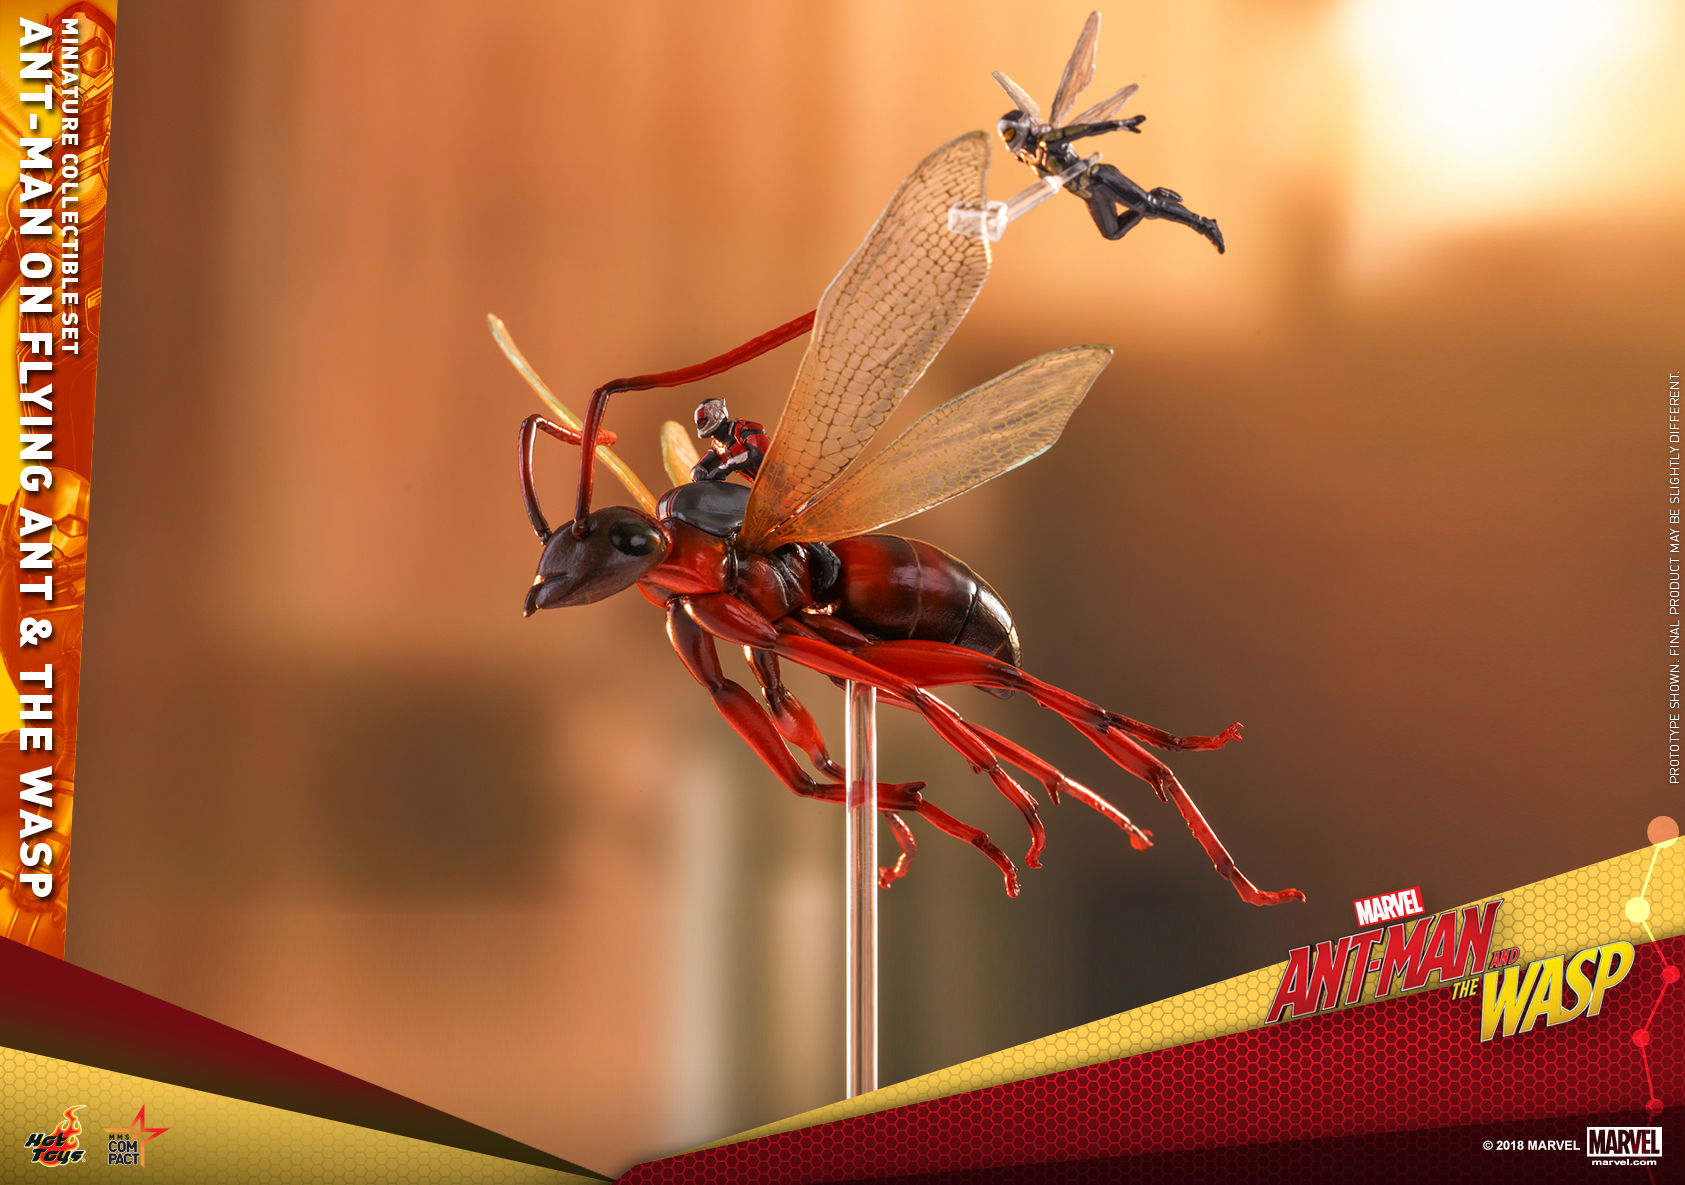 Hot Toys - Ant-Man 2 - Ant-Man on Flying Ant & the Wasp miniature collectible set_PR3